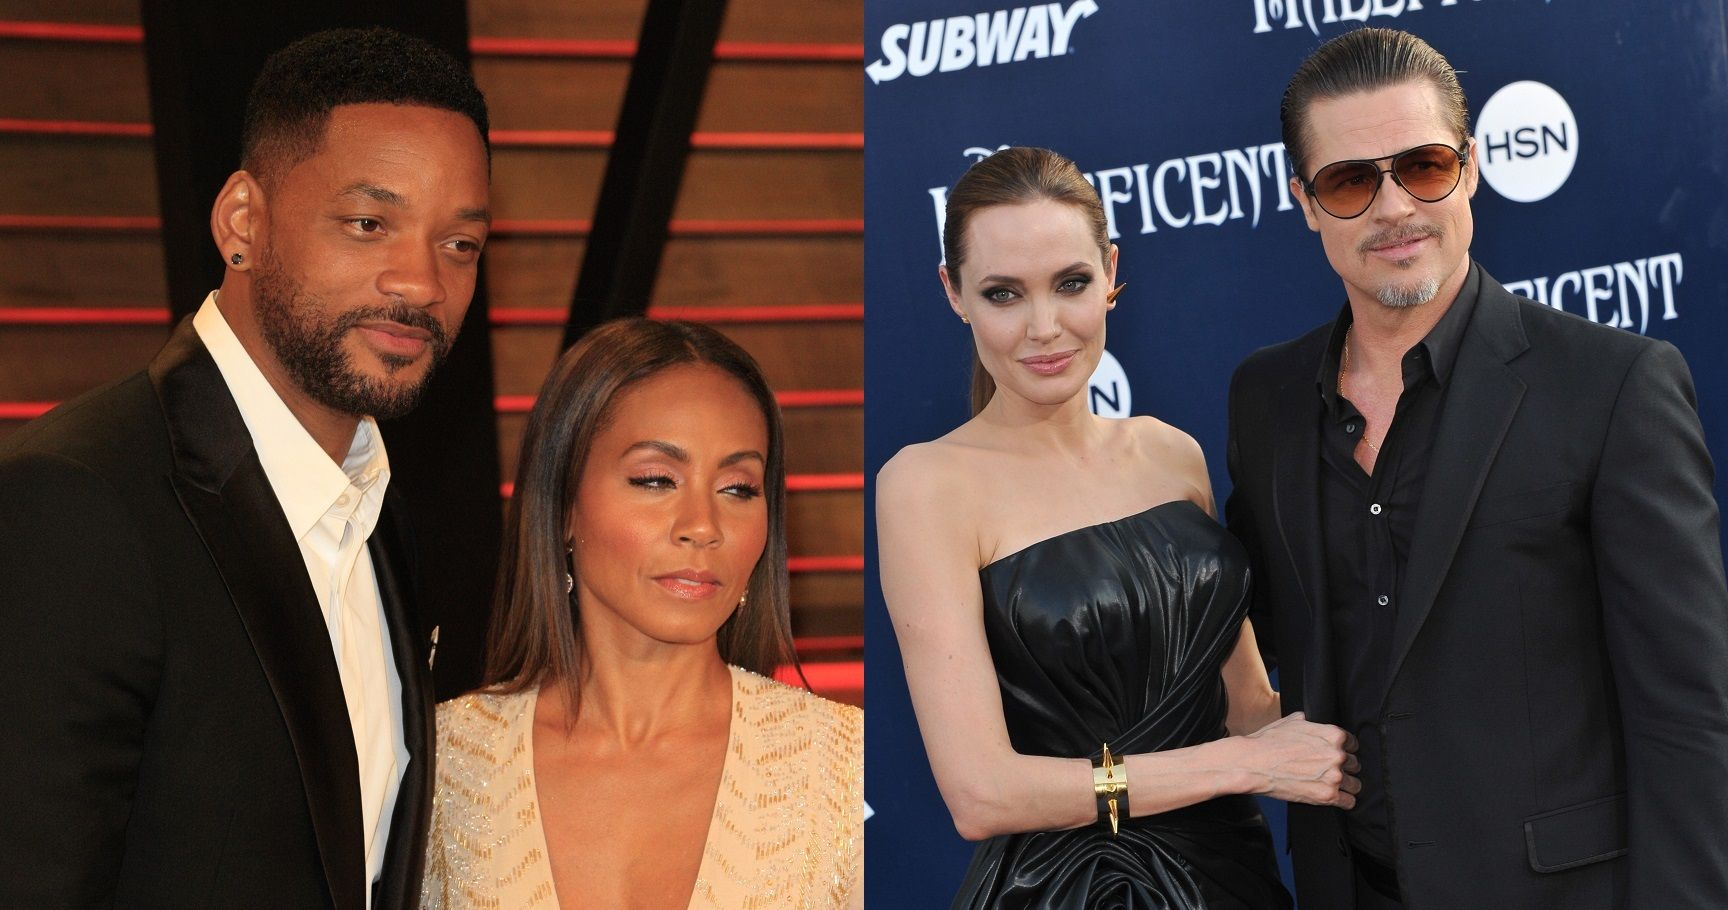 20 Celebrities You Probably Didn't Know are Swingers